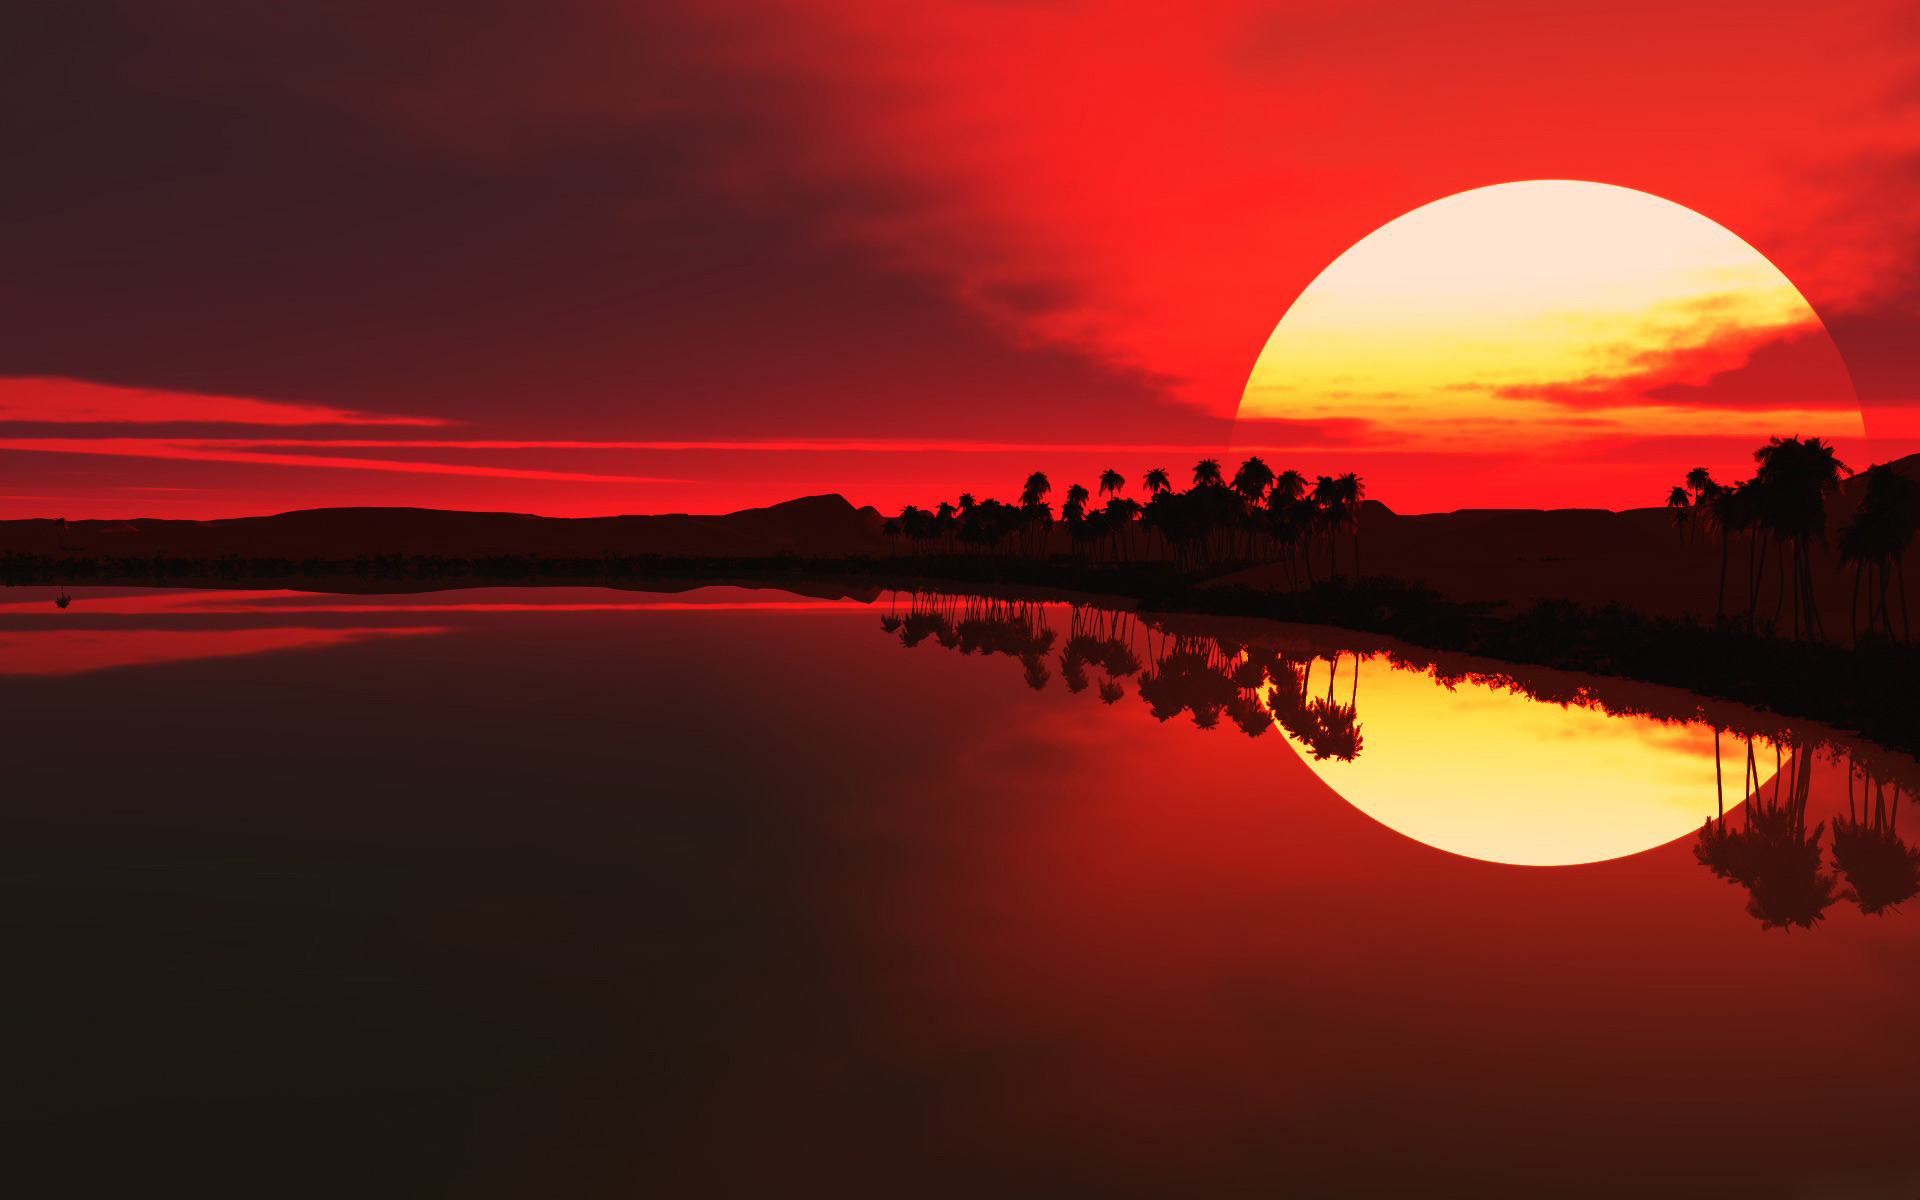 African Sunset Wallpaper | High Quality Wallpapers ...